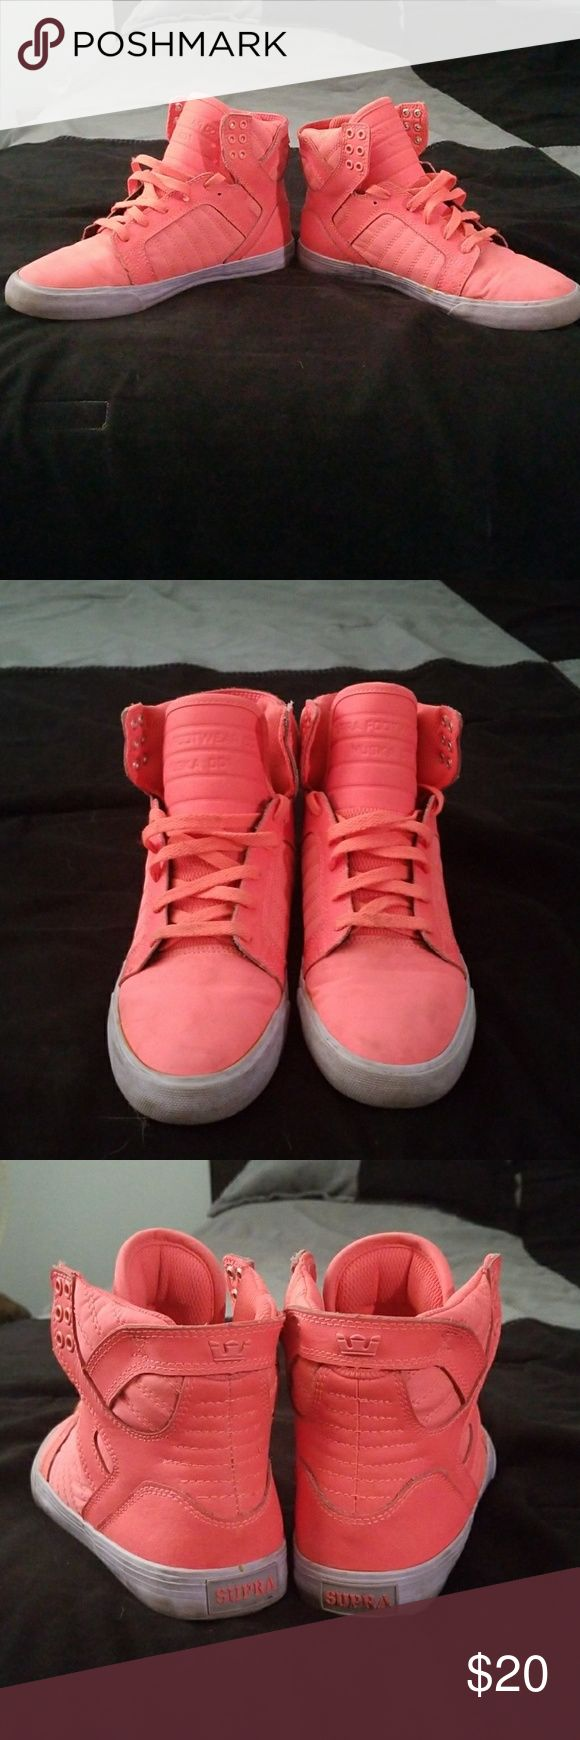 Damon colored supras High top samon colored supra shoes, super comfy only wore a few times Supra Shoes Sneakers